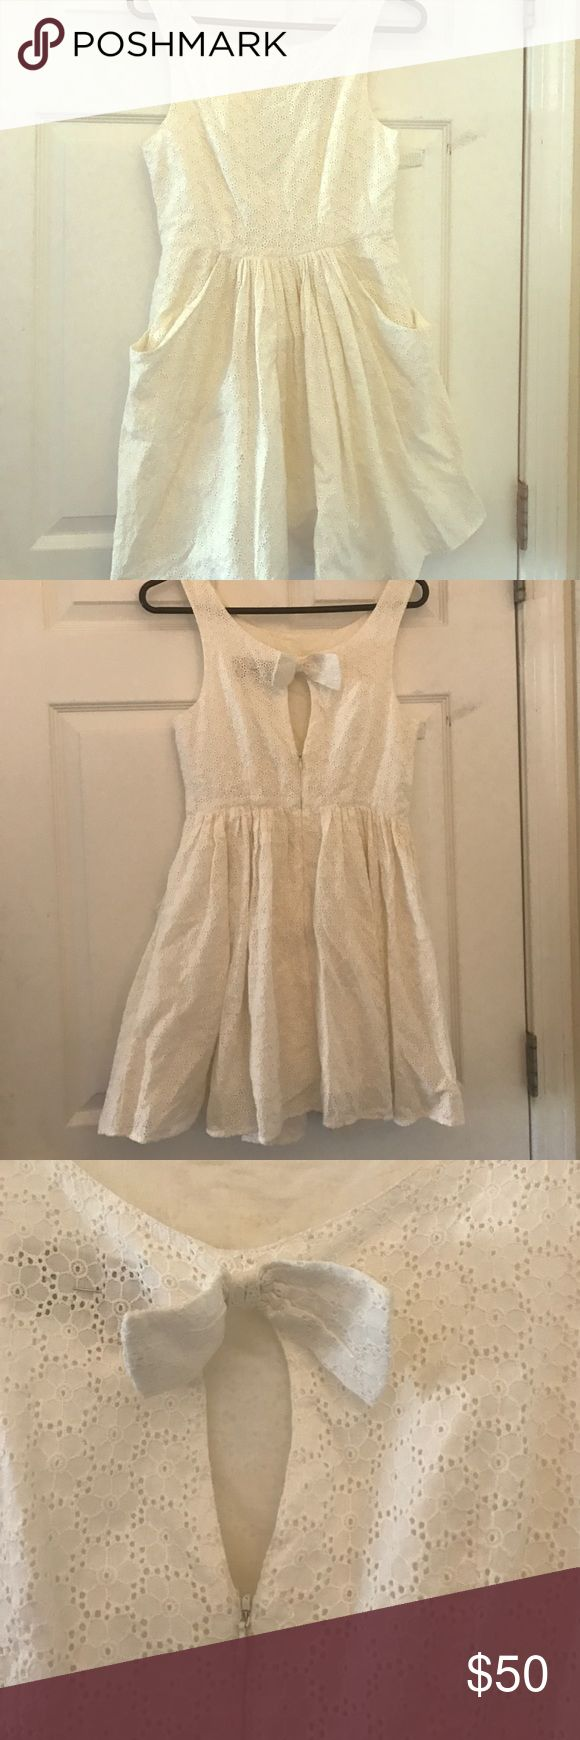 White dress White dress above the knees, bow on the back and a full skirt.  Perfect for Tea Parties Jack Wills Dresses Mini